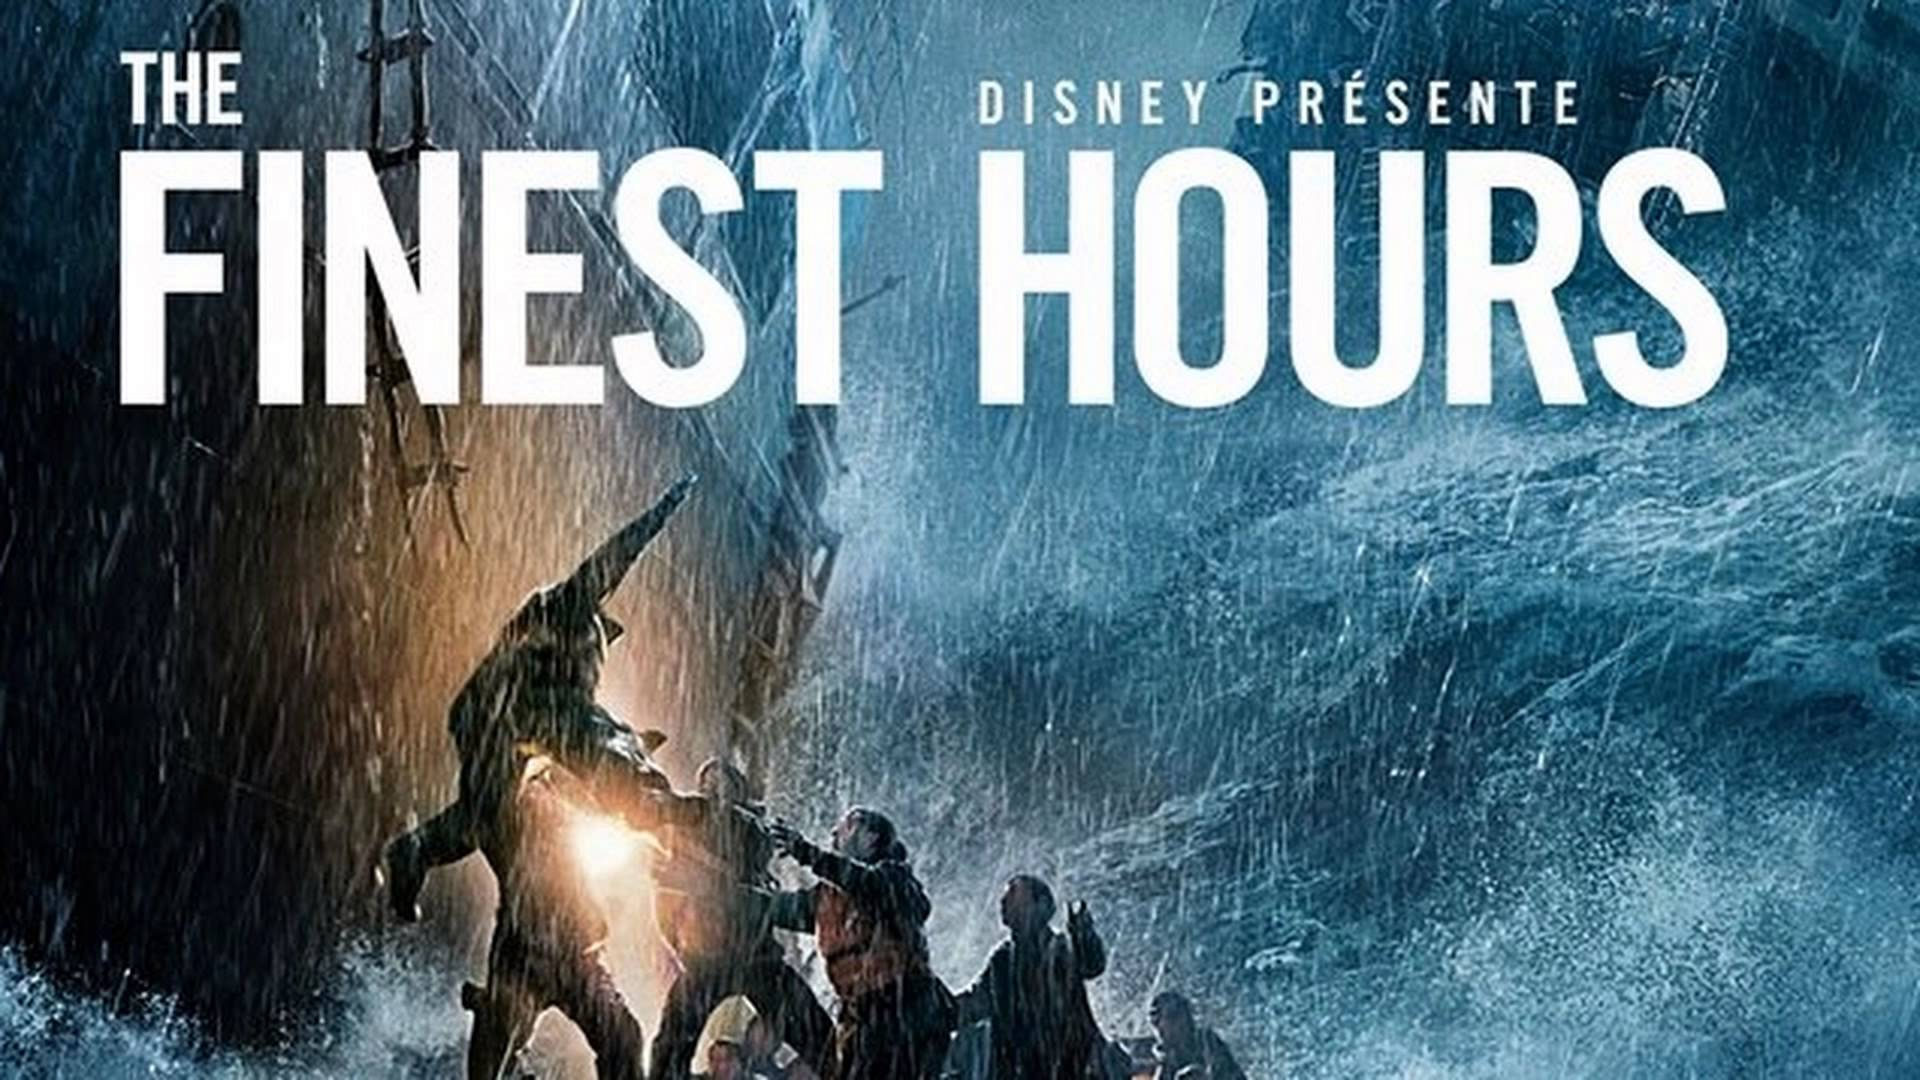 The Finest Hours Wallpapers hd